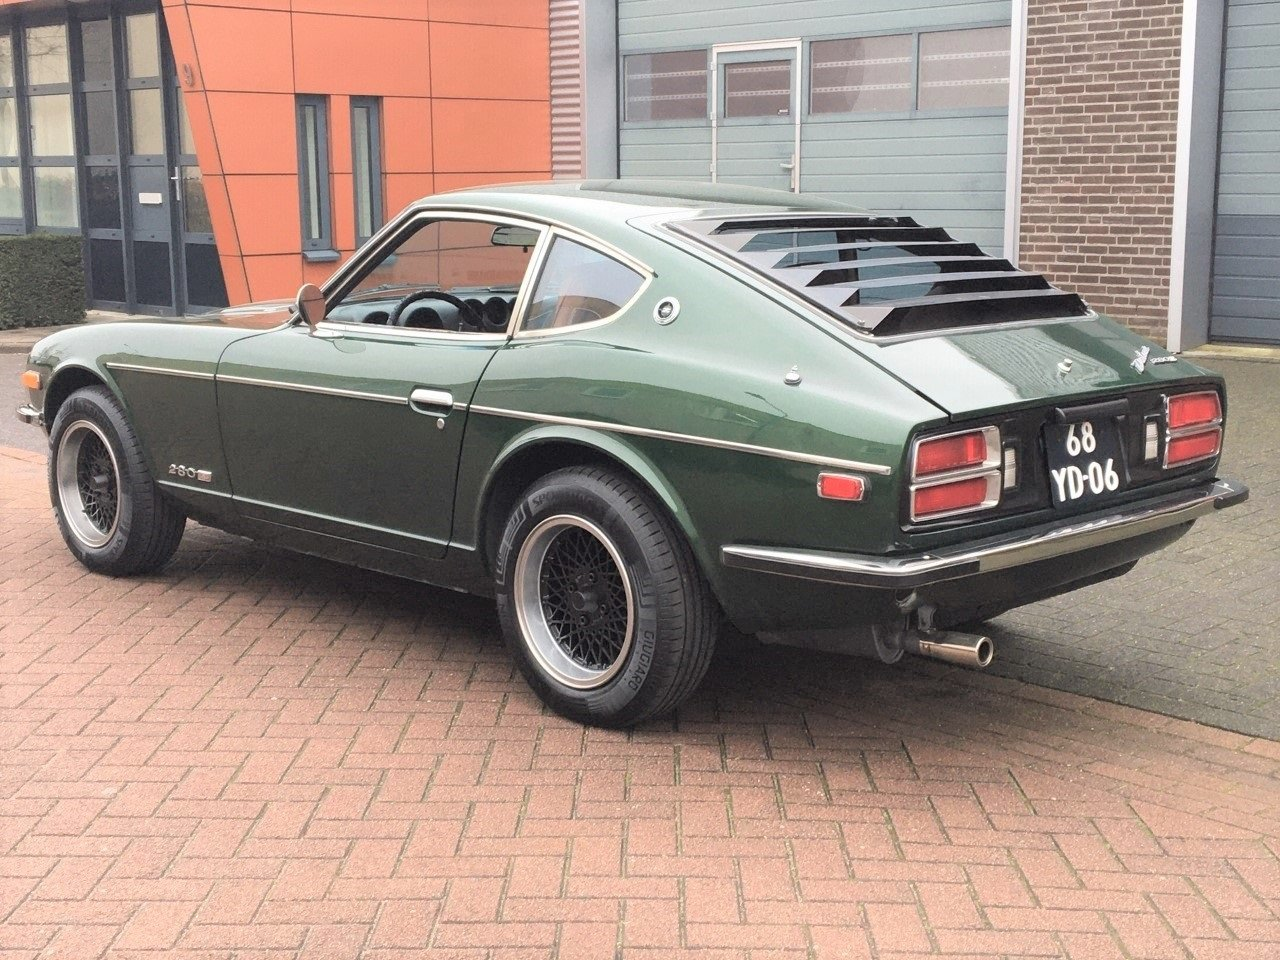 1977 Datsun 280Z in beautiful condition For Sale (picture 2 of 6)